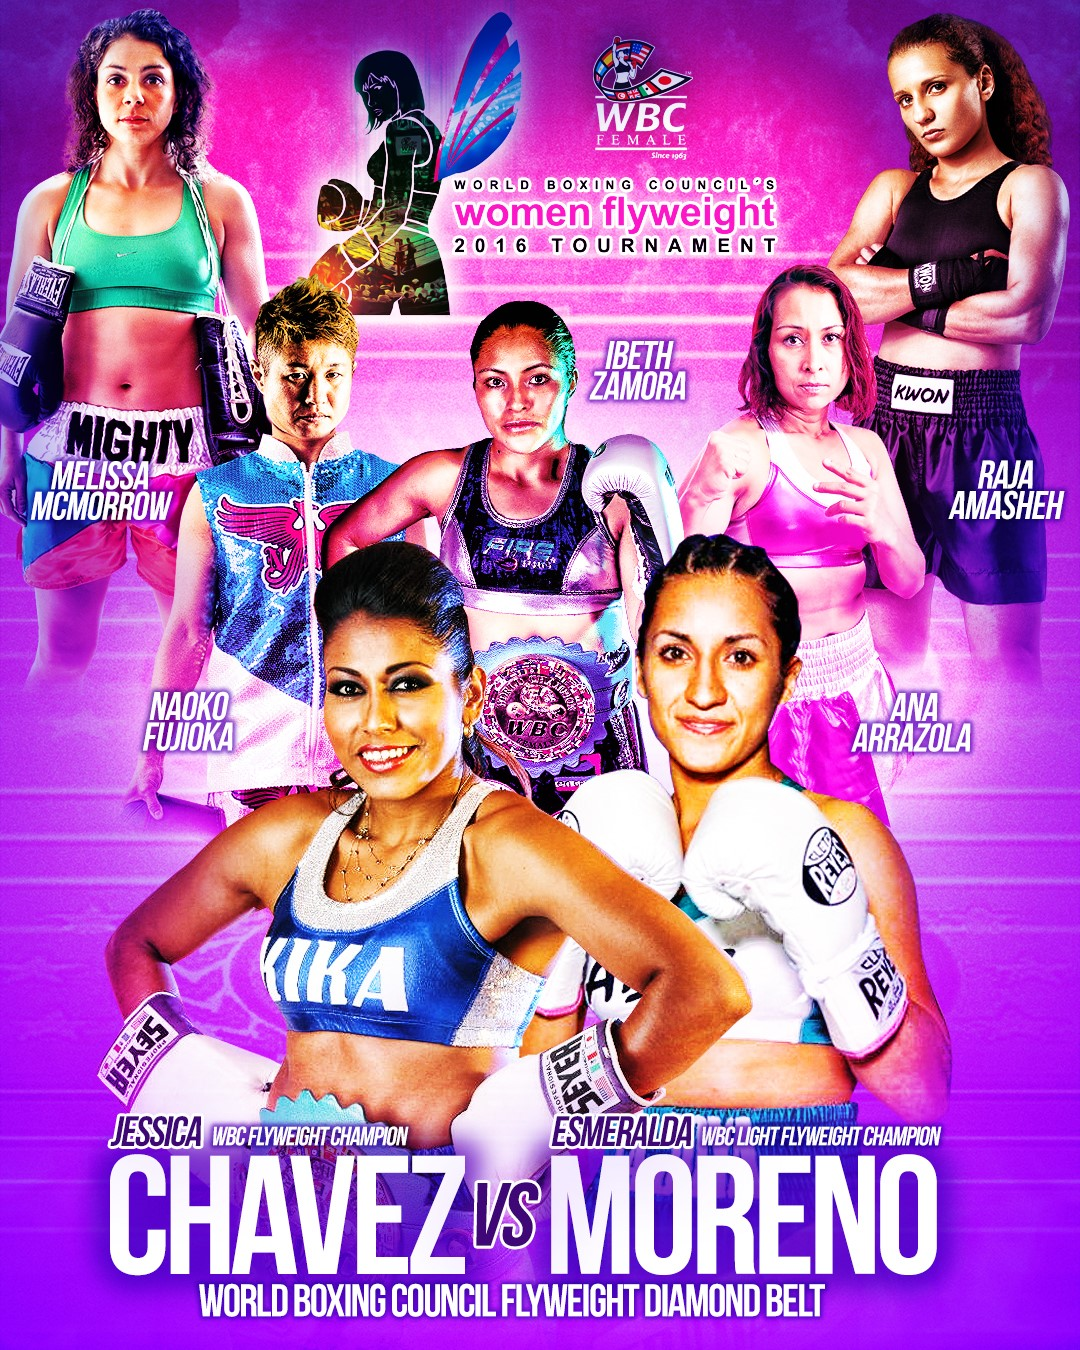 FINAL-DIAMOND-FEMALE-CHAVEZ-VS-MORENO